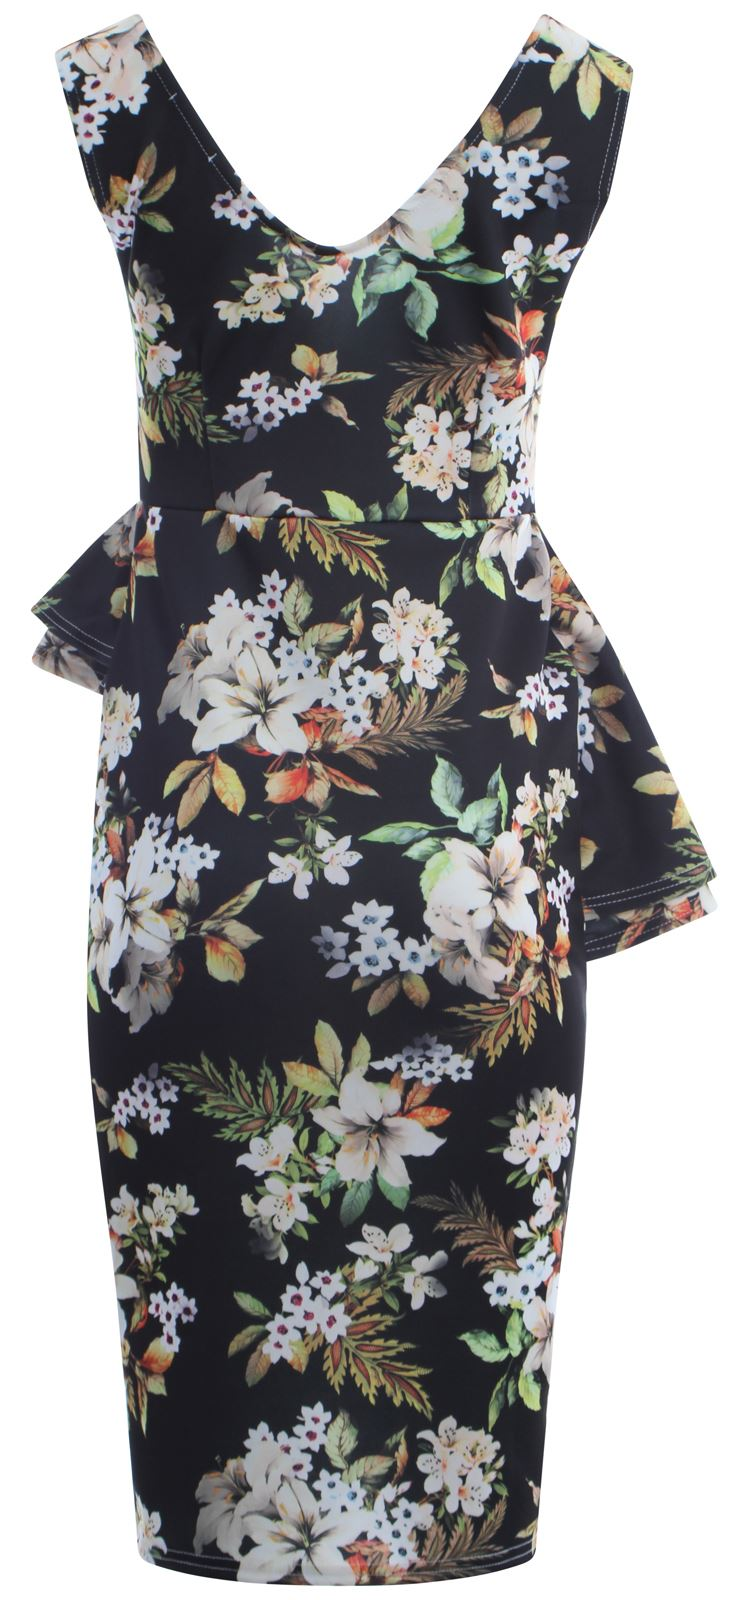 thumbnail 4 - Womens Tropical Lilly Floral Print Double Peplum Bodycon Midi Skirt Dress 8-22